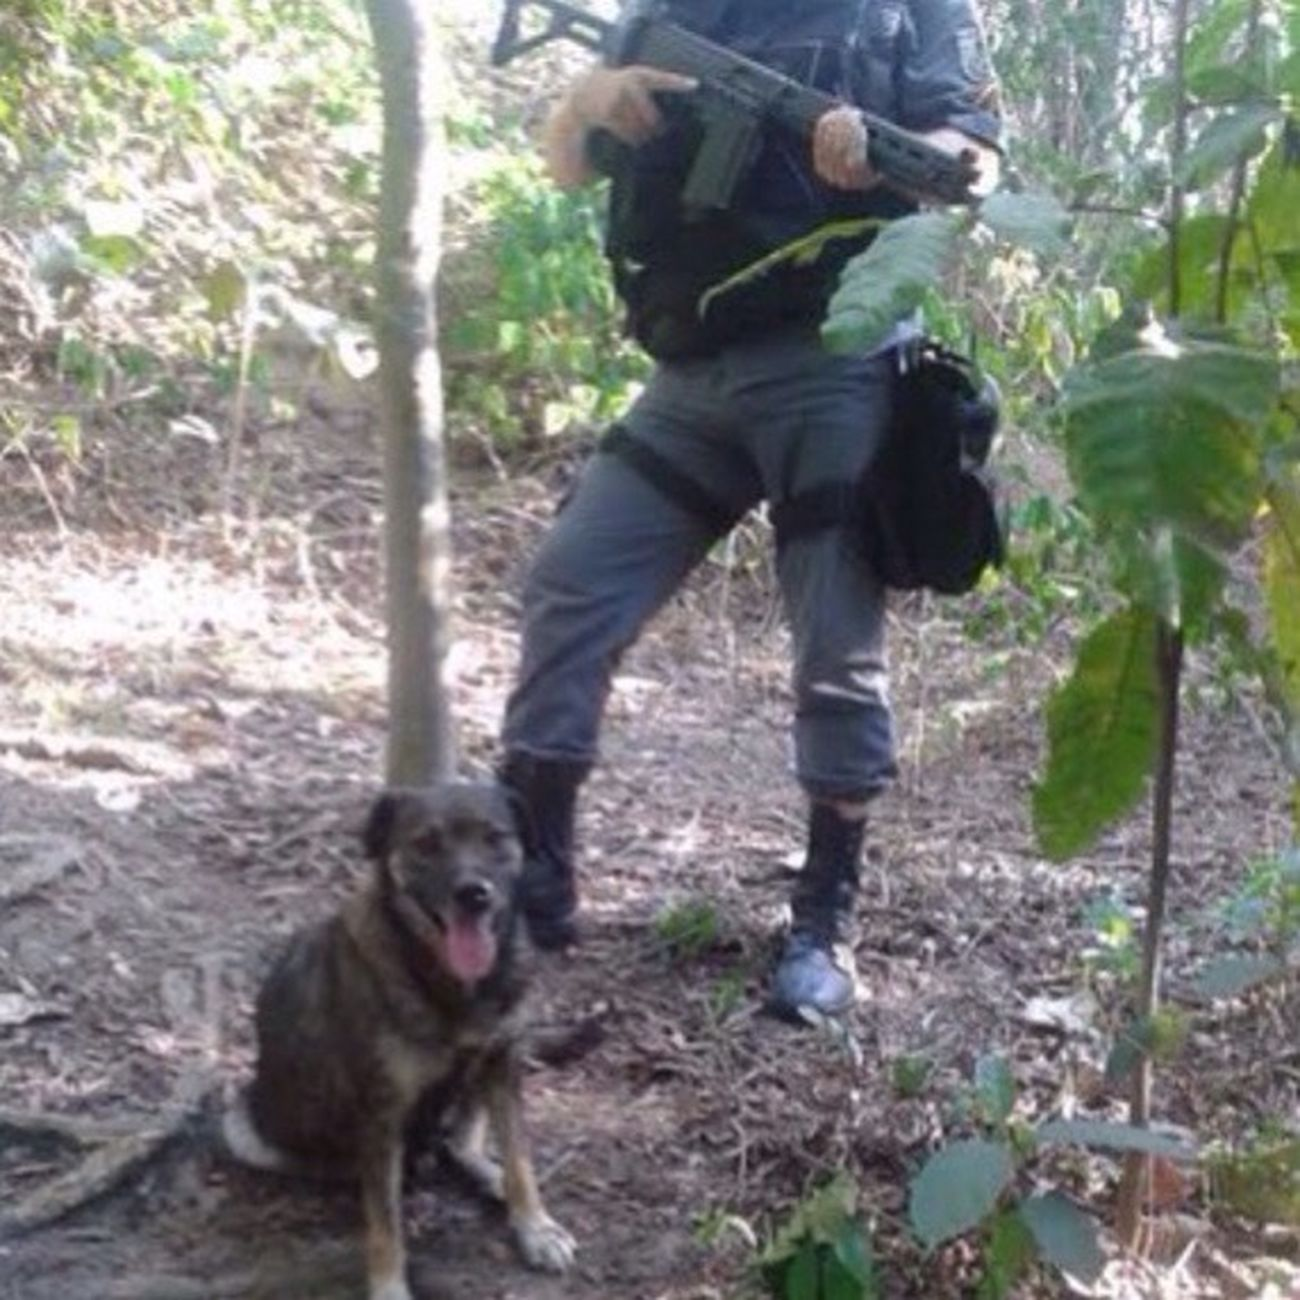 Heroine Hero Dog Love Great History True History Police Force Eis a fiel Cb Bahiense, essa cadela, foi morta no último sábado dia 21, ao defender a guarnição da UPP da Pedra do Sapo, no Complexo do Alemão. Ela denunciou a aproximação de um traste armado com um AK-47, que pretendia atacar os policiais que faziam patrulha na localidade. Ela não só deu o alarme, como com valentia partiu pra dentro do marginal para defender seus amigos policiais. Morreu com um tiro de fuzil, como heroína, mostrando mais racionalidade que muitos pretensos racionais, ao escolher o lado certo da força. E por isso, merece que sua memória seja aqui valorizada como grande companheira dos guerreiros da UPP que sempre foi. Here is the faithful Cb Bahiense, that dog, was killed last Saturday 21, when defending the GC of the UPP of Pedra do Sapo, in Complexo do Alemão in Rio de Janeiro. She denounced the approach of a freighter armed with an AK-47, which was intended to attack police officers patrolling the area. Not only did she give the alarm, but with courage she went inside the marquee to defend her police friends. She died with a rifle shot, like heroin, showing more rationality than many would-be rationals, choosing the right side of the force. And for that, it deserves that its memory here is valued like great companion of the warriors of the UPP that always was. This picture, not make for me, but I need explain this case.